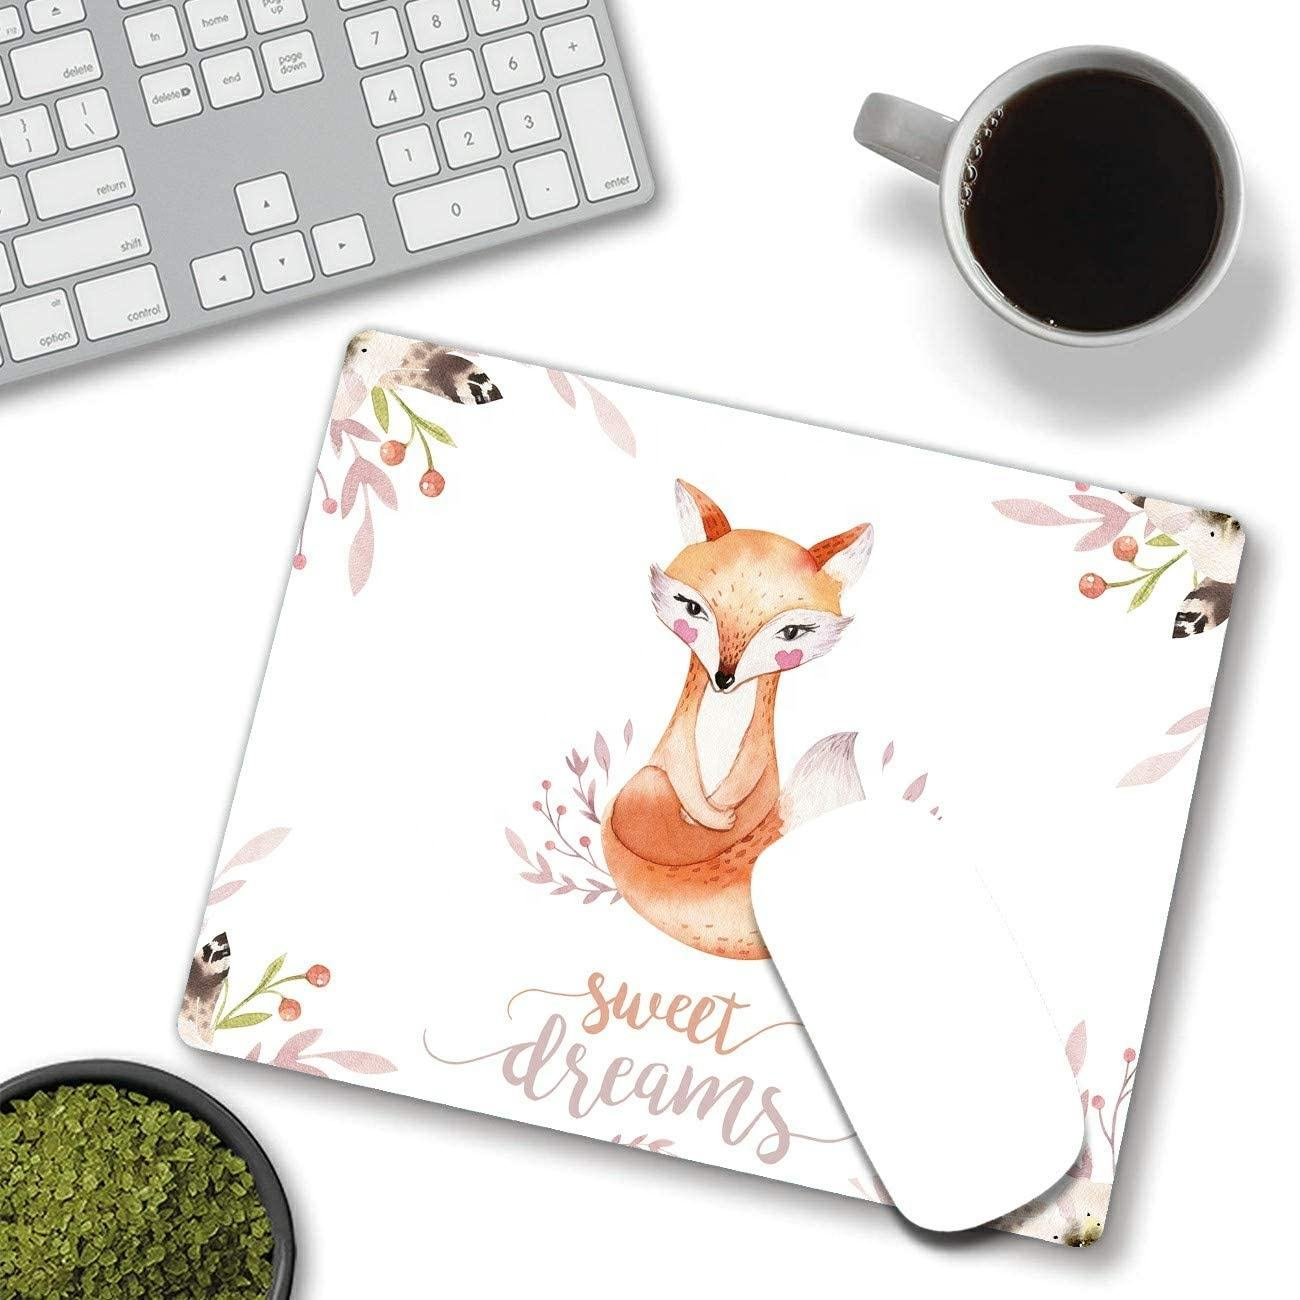 Dikoer Sweet Dreams Fox Mouse Pad for Laptops Office Computer Decor、Cute Gaming Mousepad with Design、滑り止めラバーマウスマット